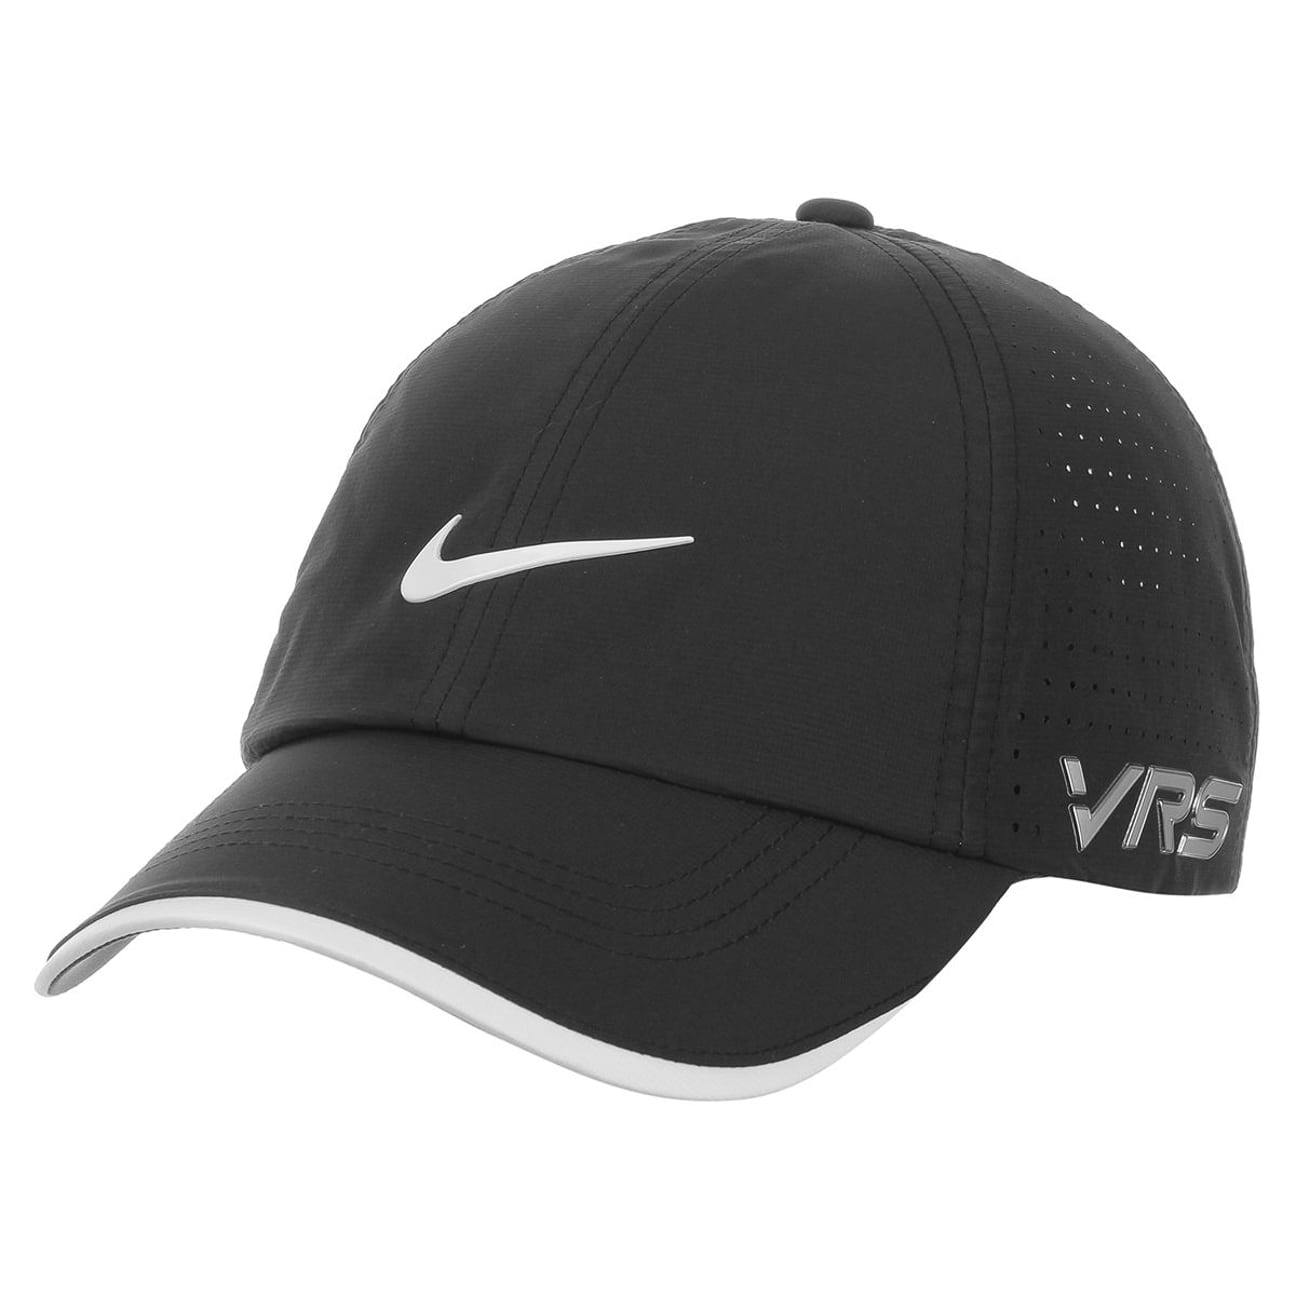 acf5d171be9 New Tour Perforated Golf Cap by Nike - 27